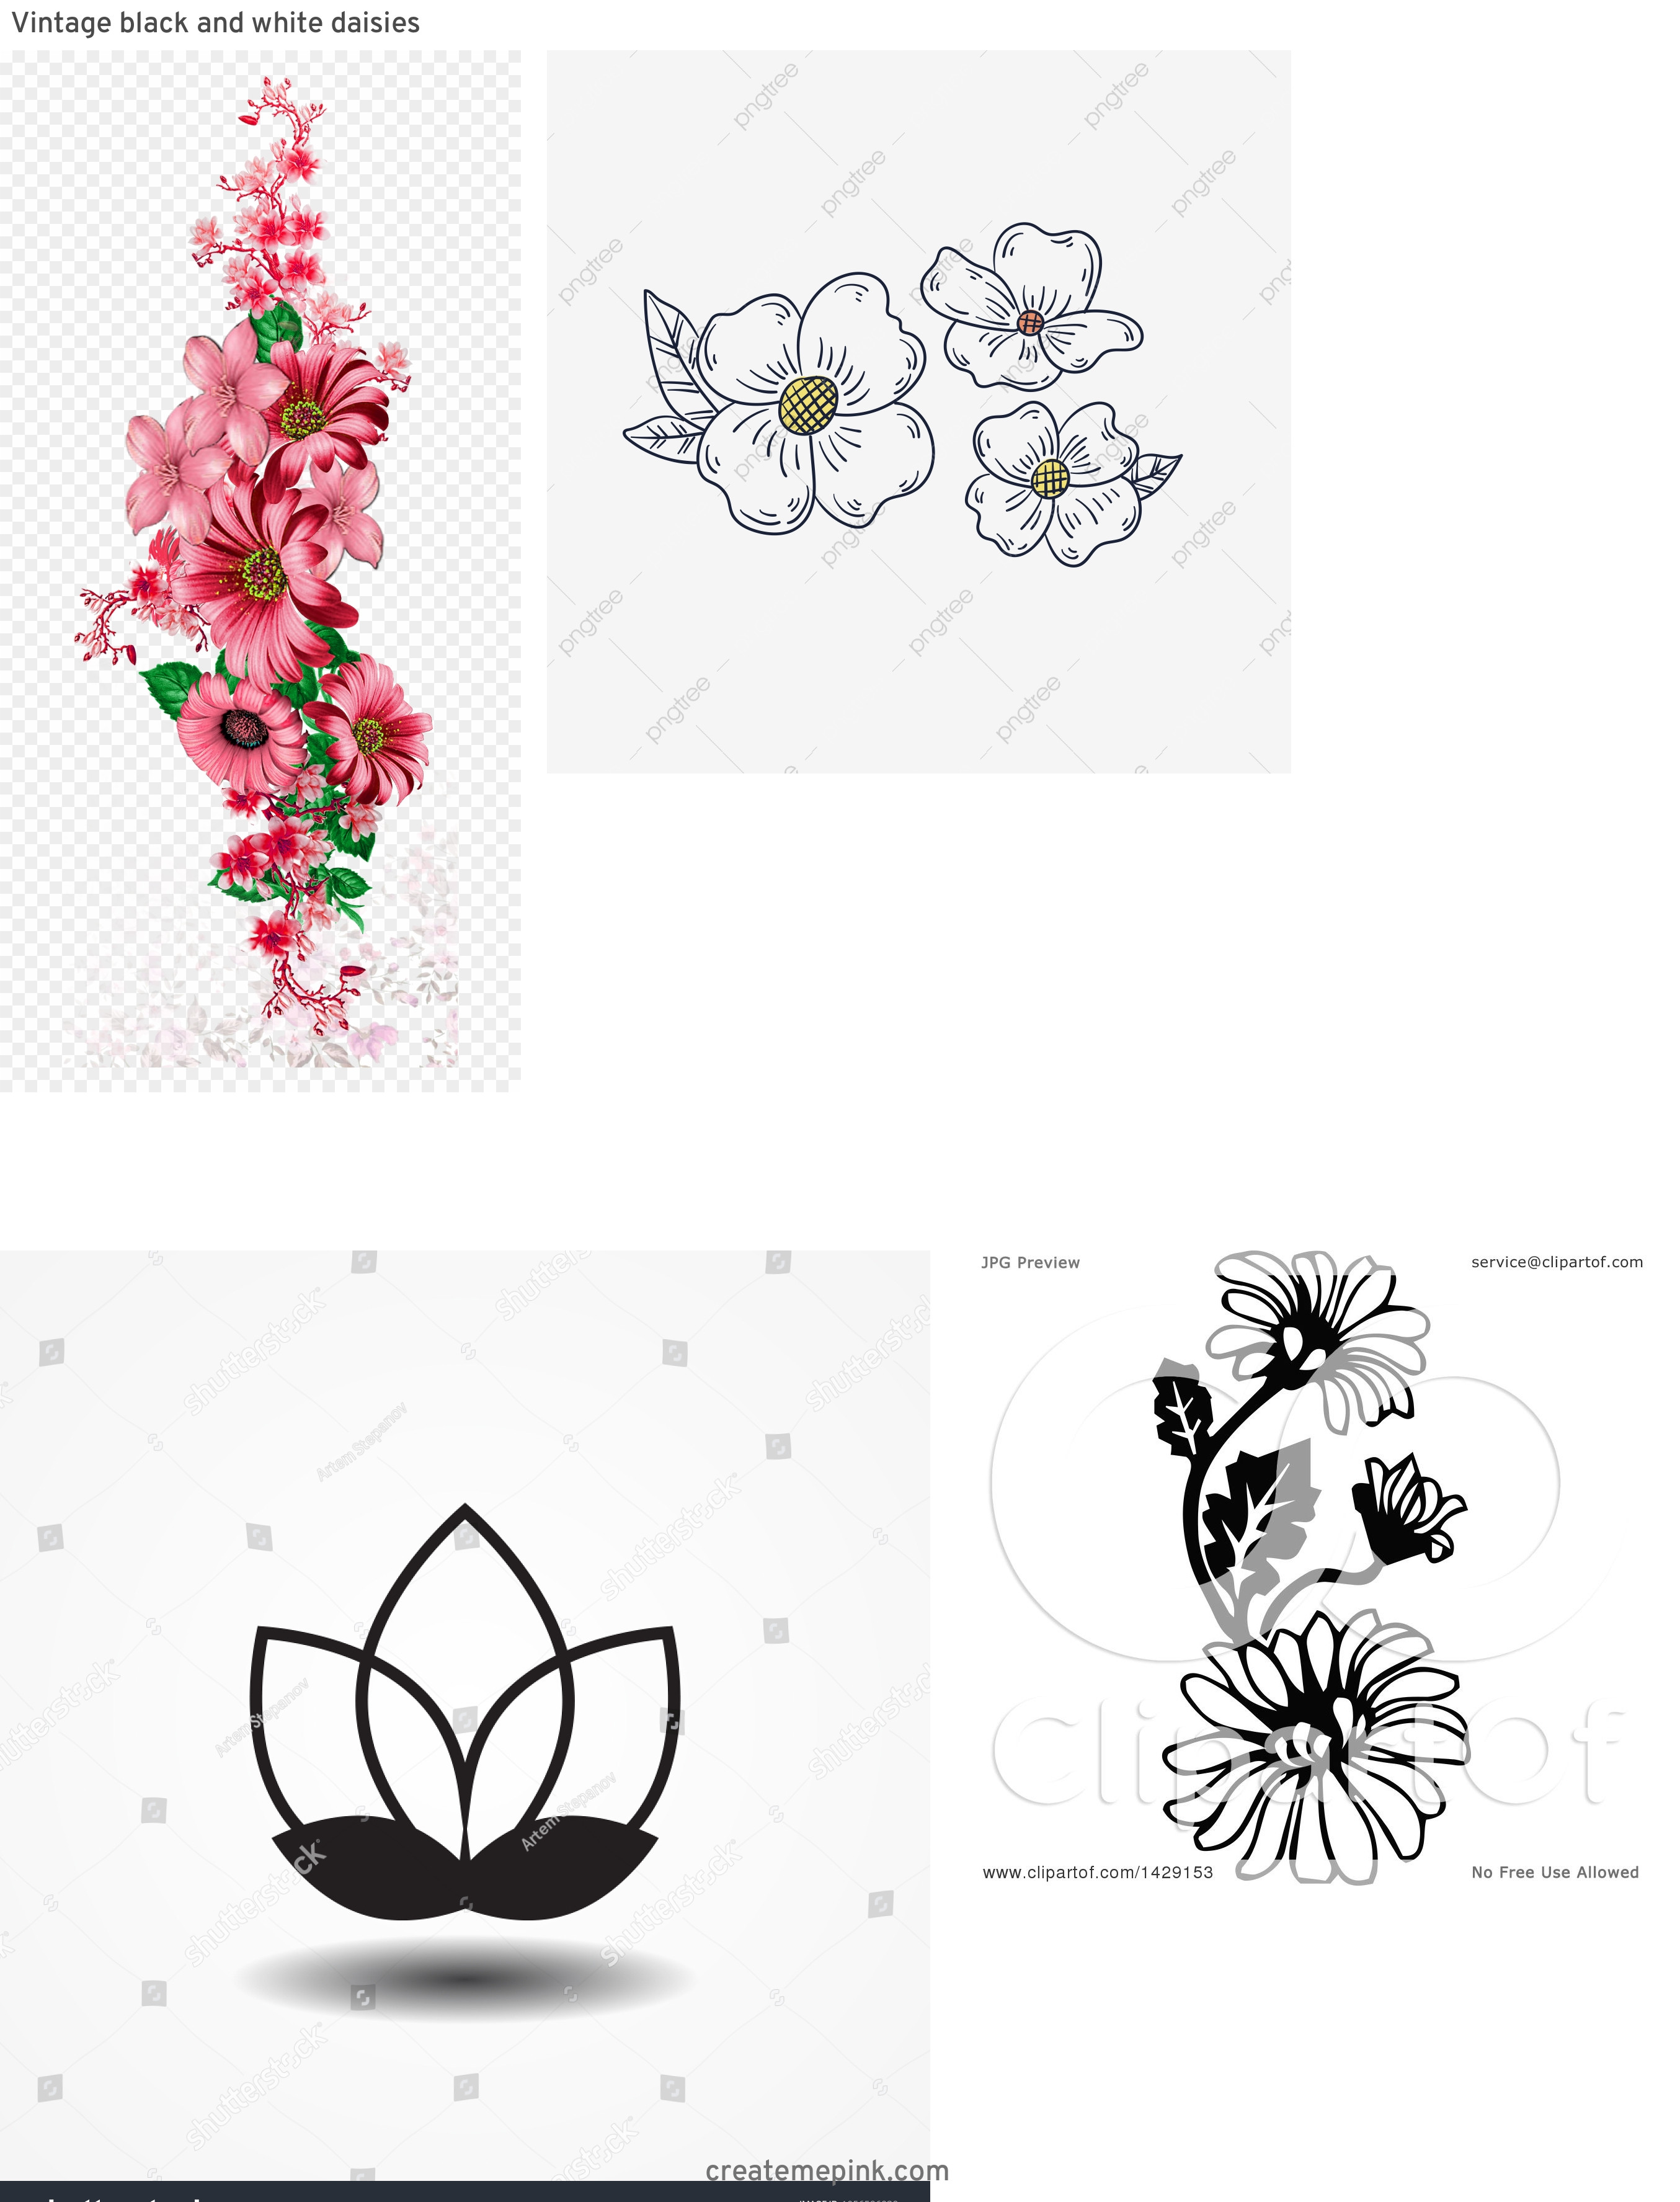 Flower Daisey Black Vector Art: Vintage Black And White Daisies